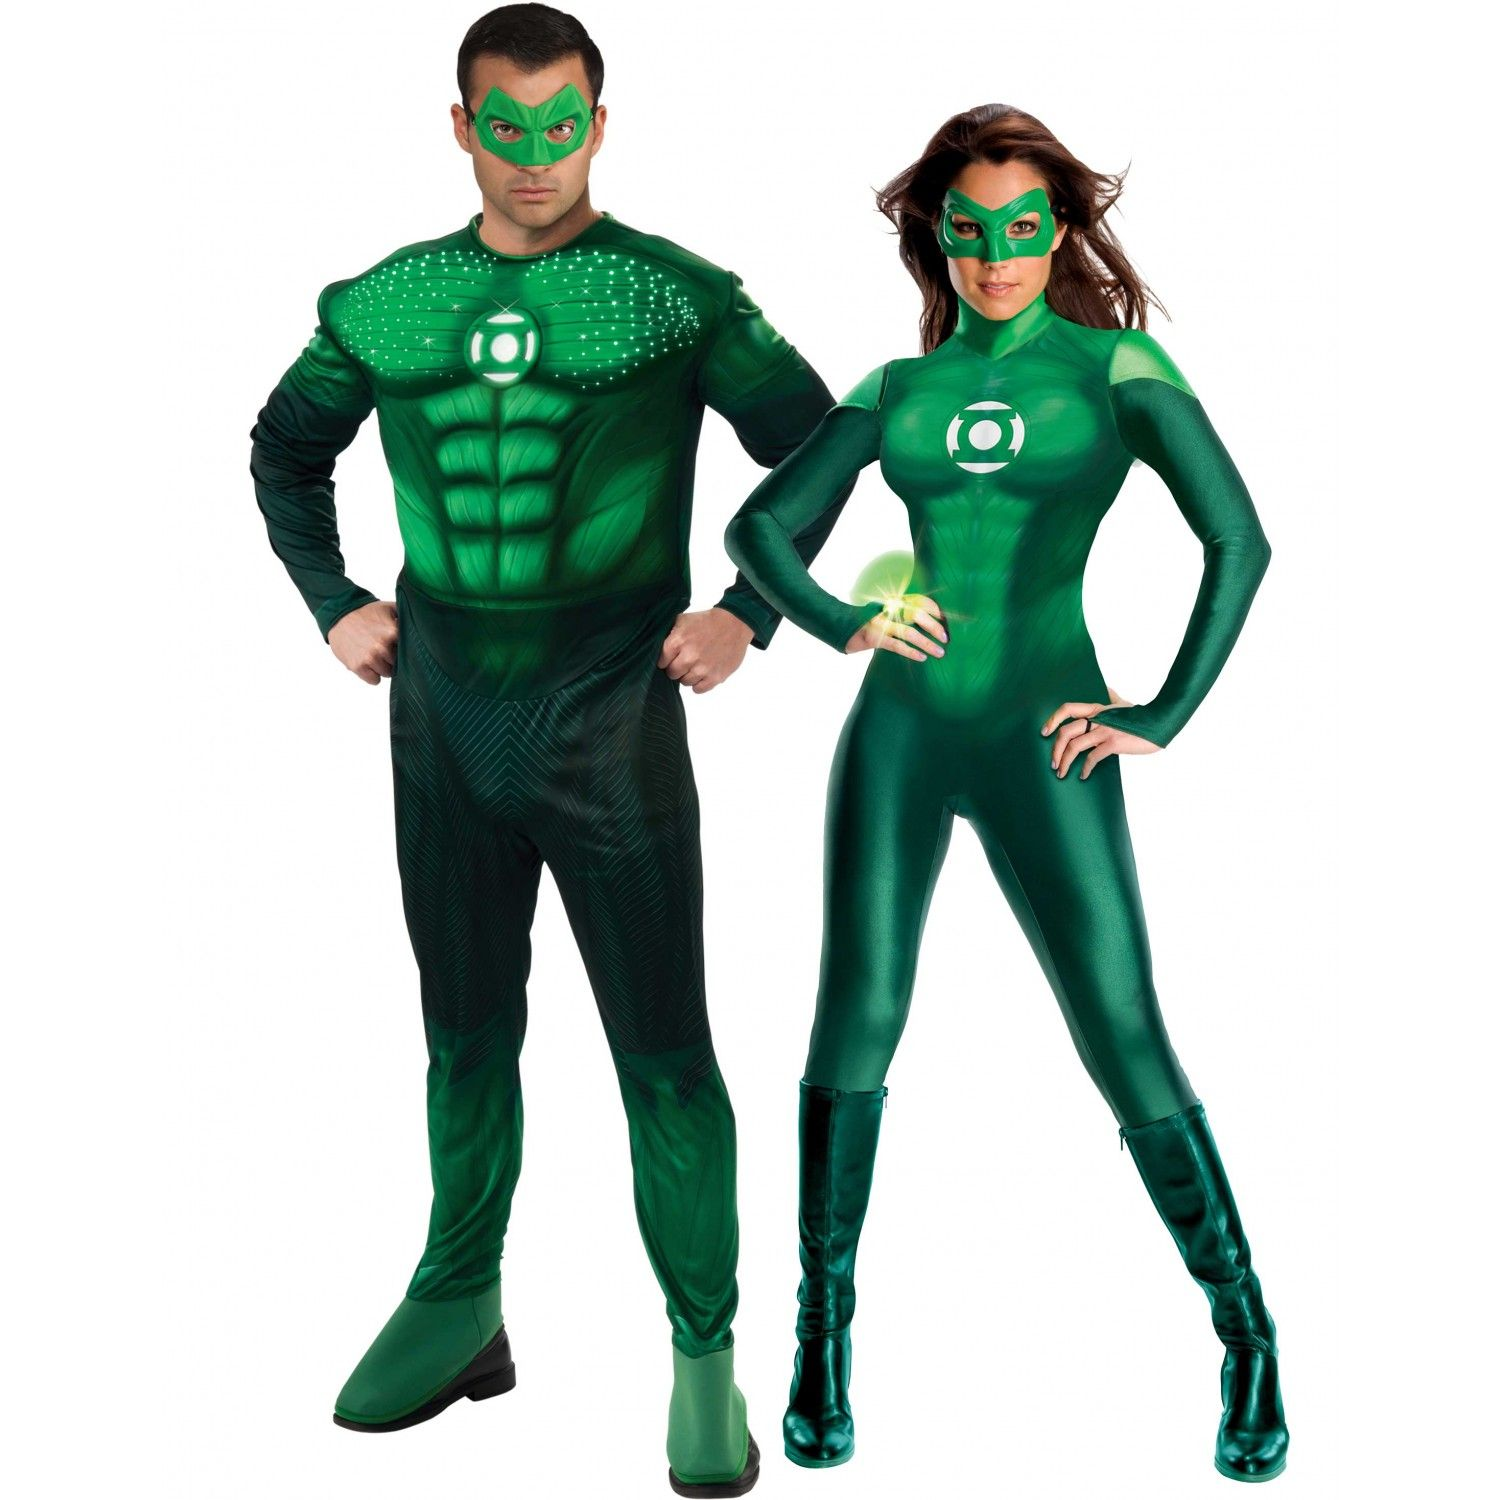 couples costumes | Green Lantern Costume - Adult Costumes For Couples - Couples Costumes Green Lantern Costume - Adult Costumes For